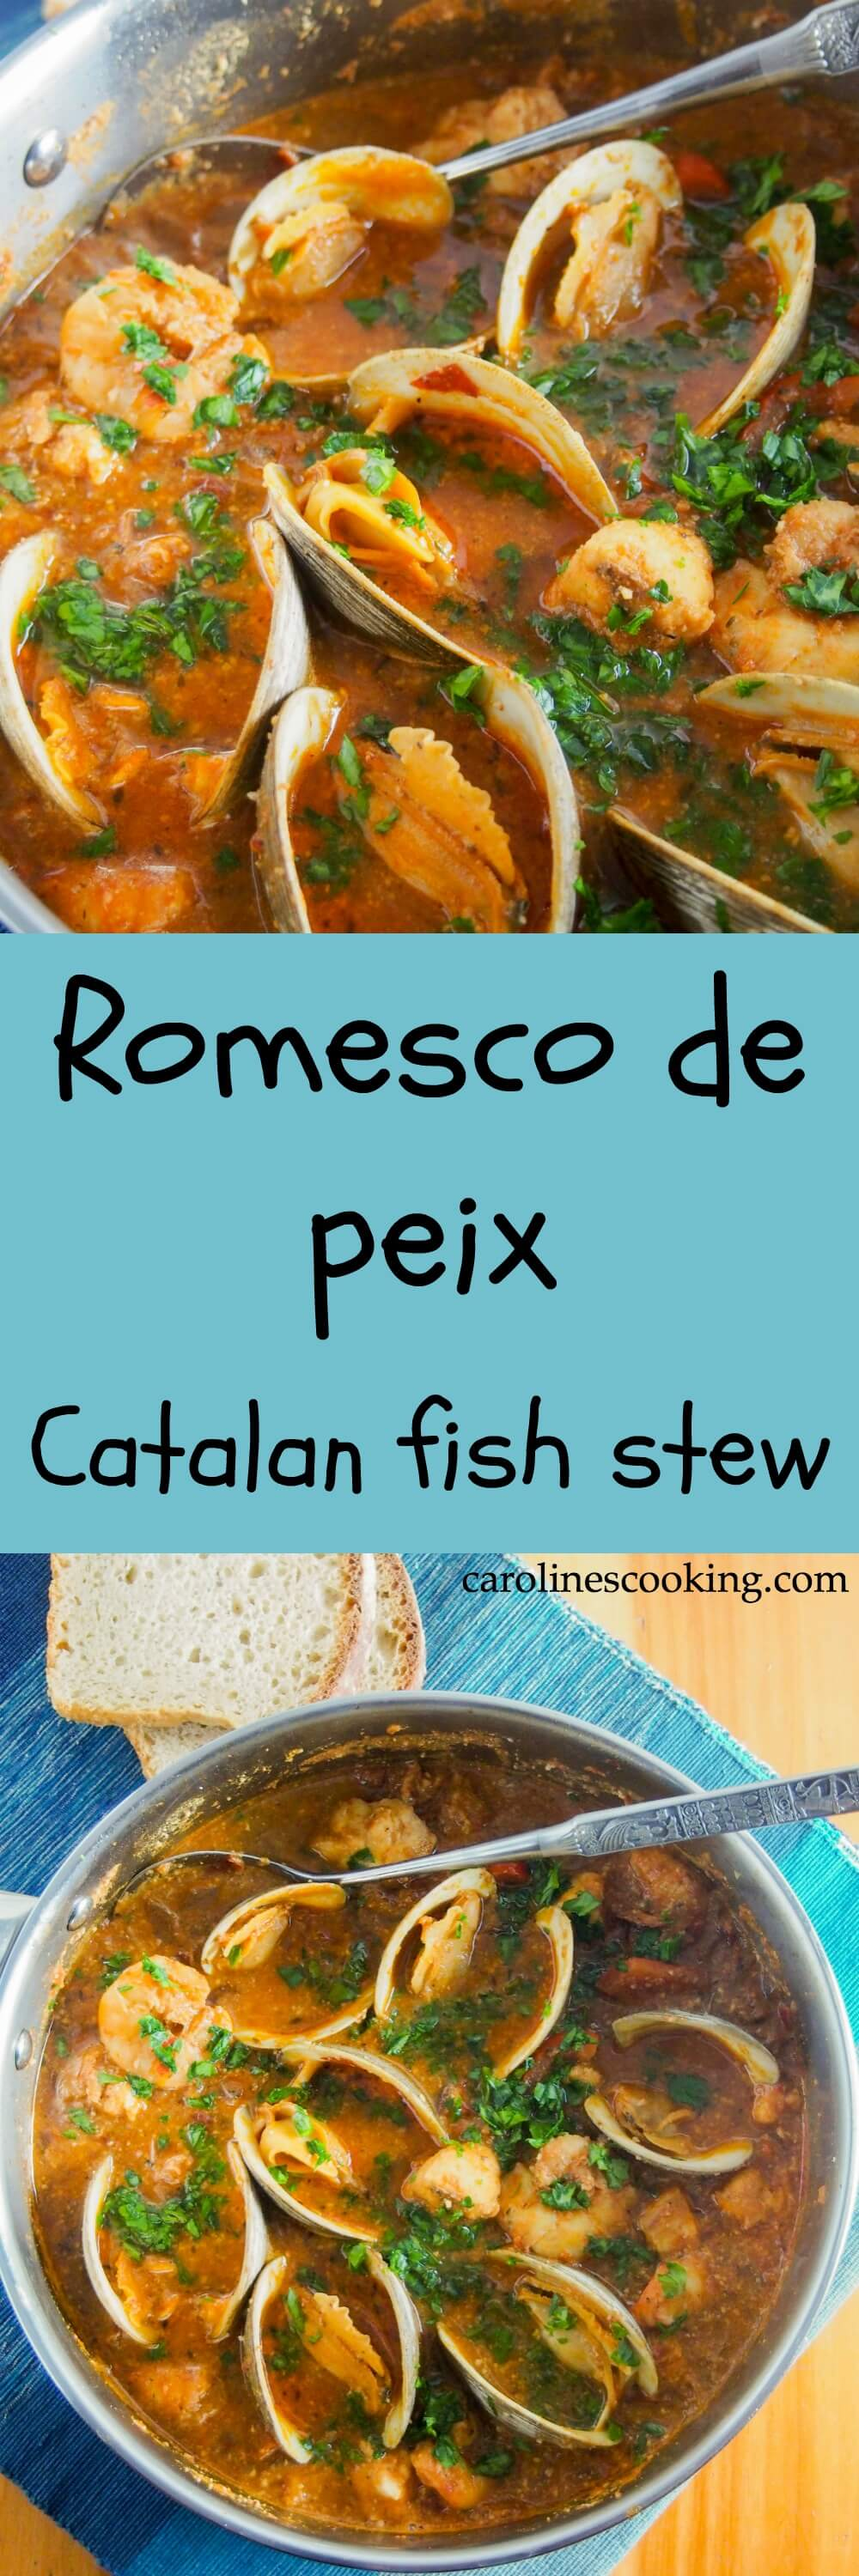 Romesco de peix, Catalan fish stew, is a wonderfully flavorful mix of seafood in a sauce made with almonds, peppers, tomato and garlic. It's comforting without being too heavy. Truly delicious. #seafood #Spanishfood #stew